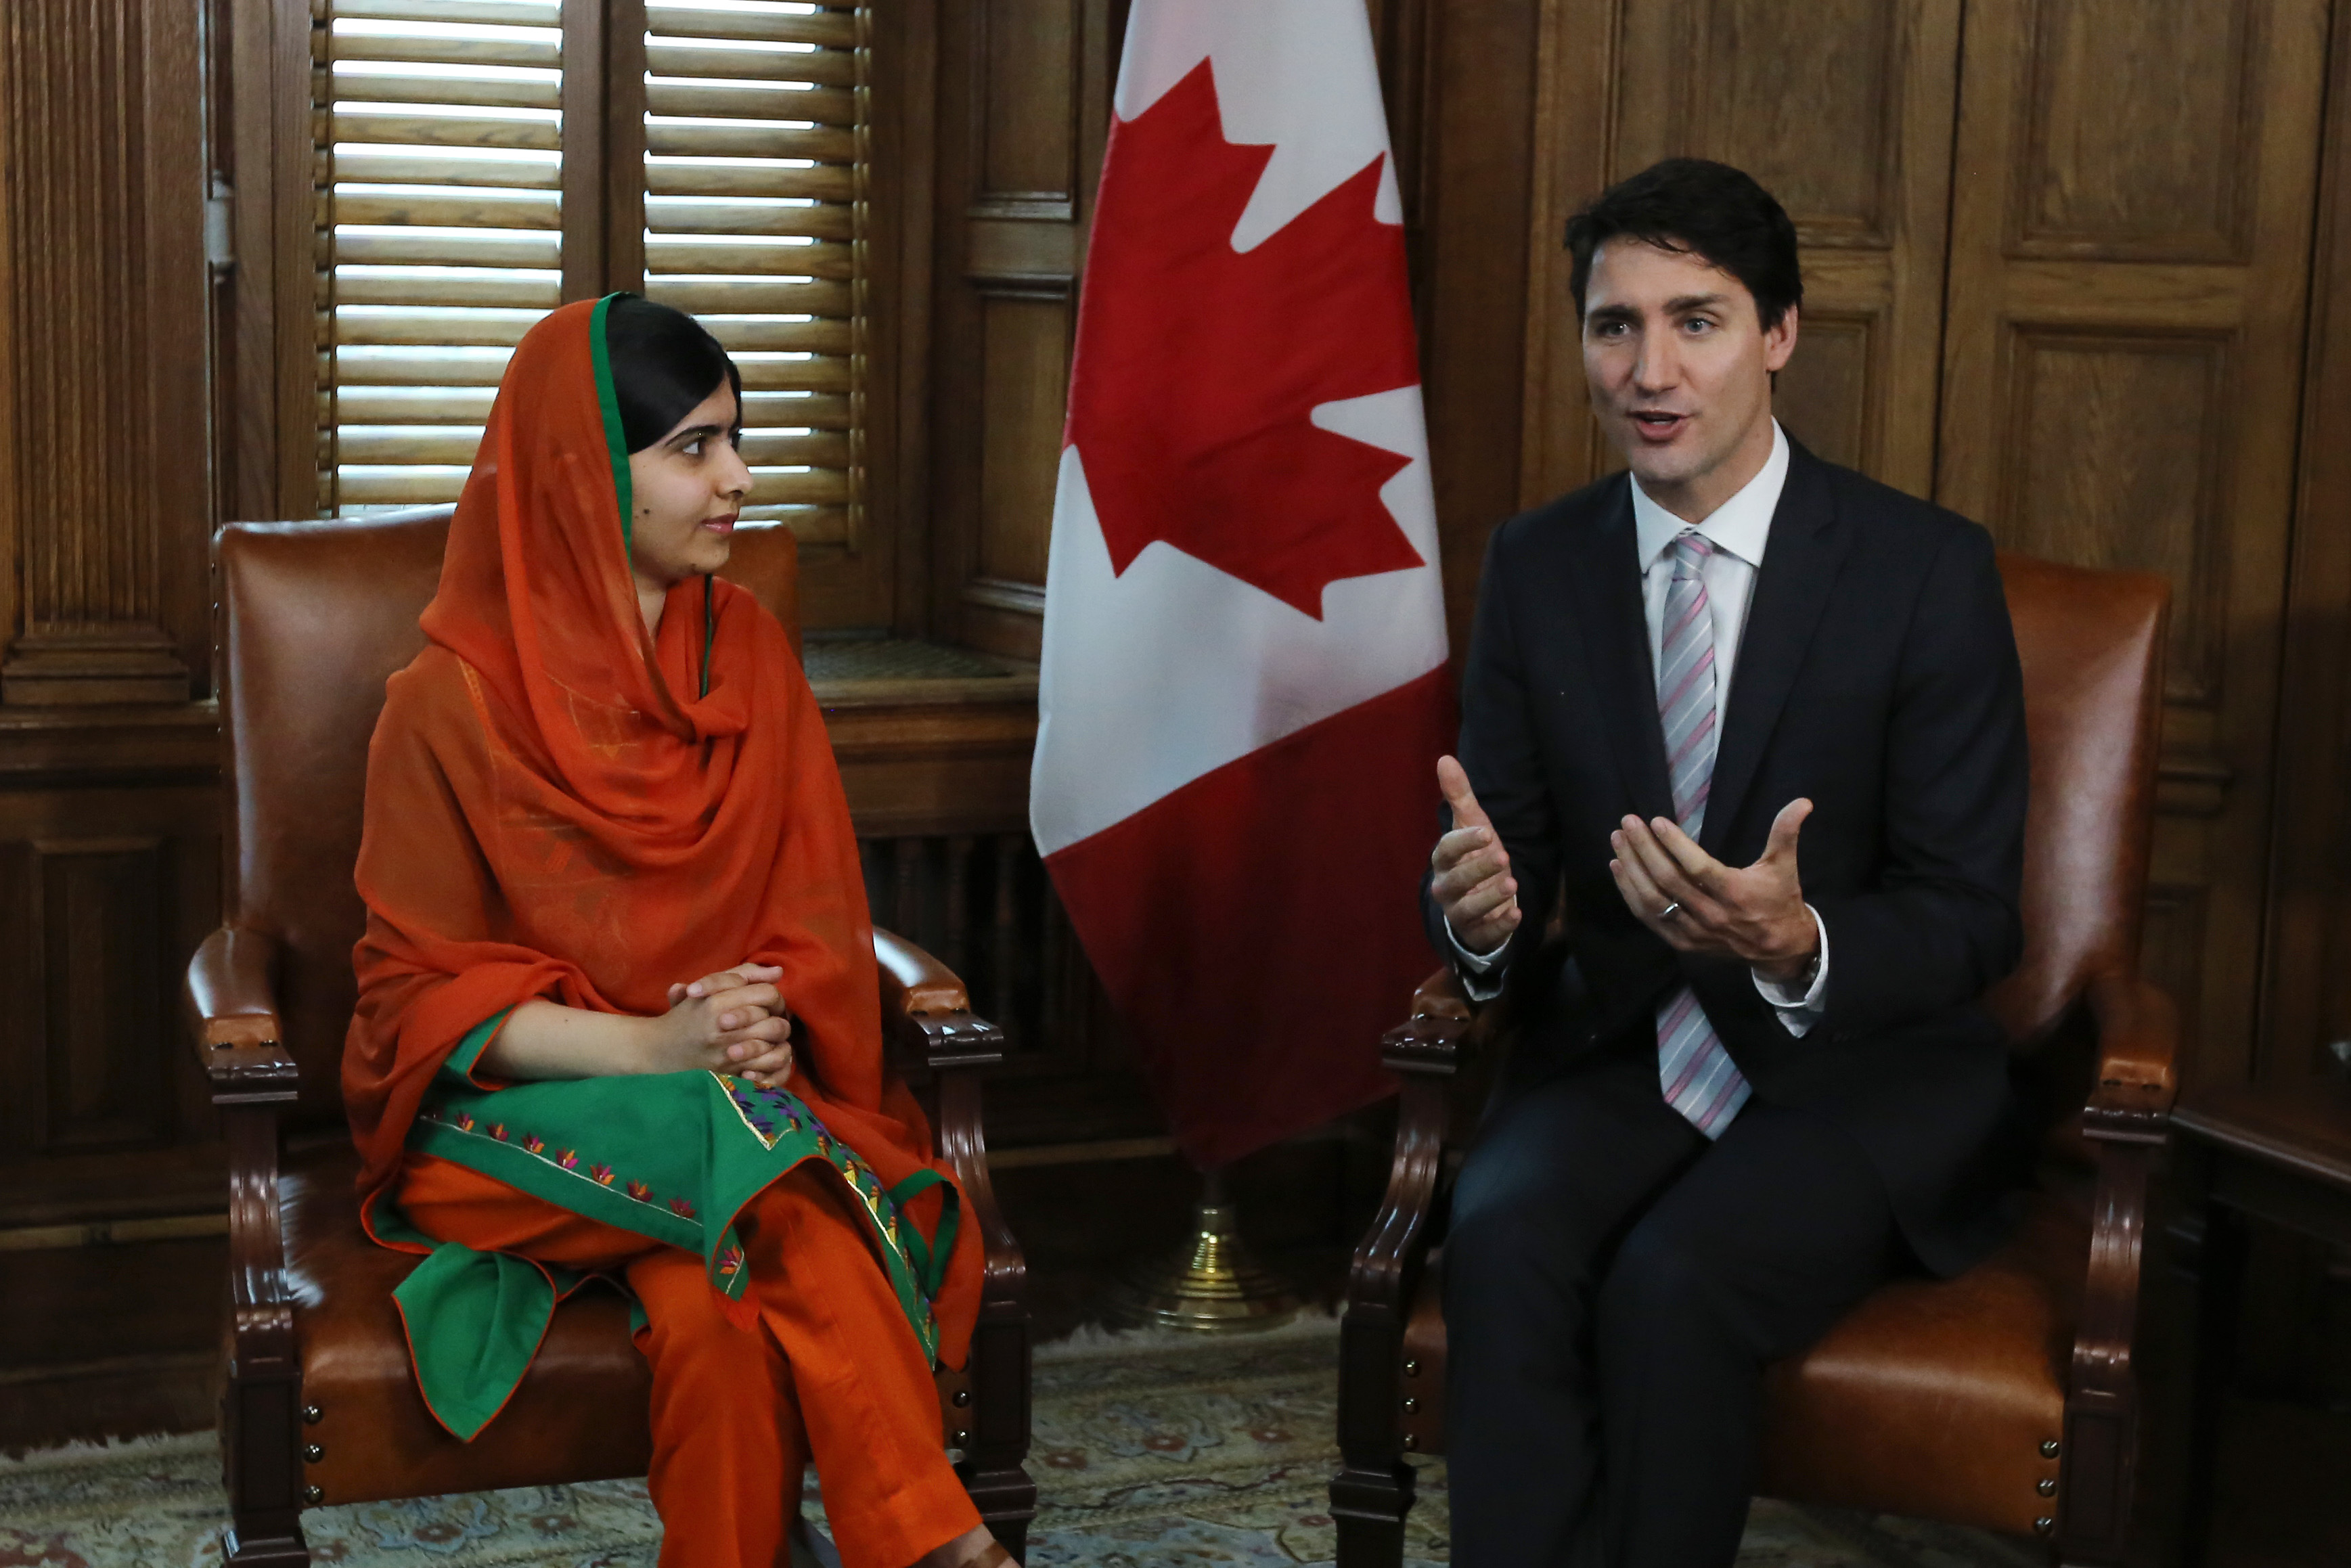 Malala Yousafzai speaks with Canadian Prime Minister Justin Trudeau in Trudeau's office on Parliament Hill in Ottawa, Ontario, April 12, 2017.